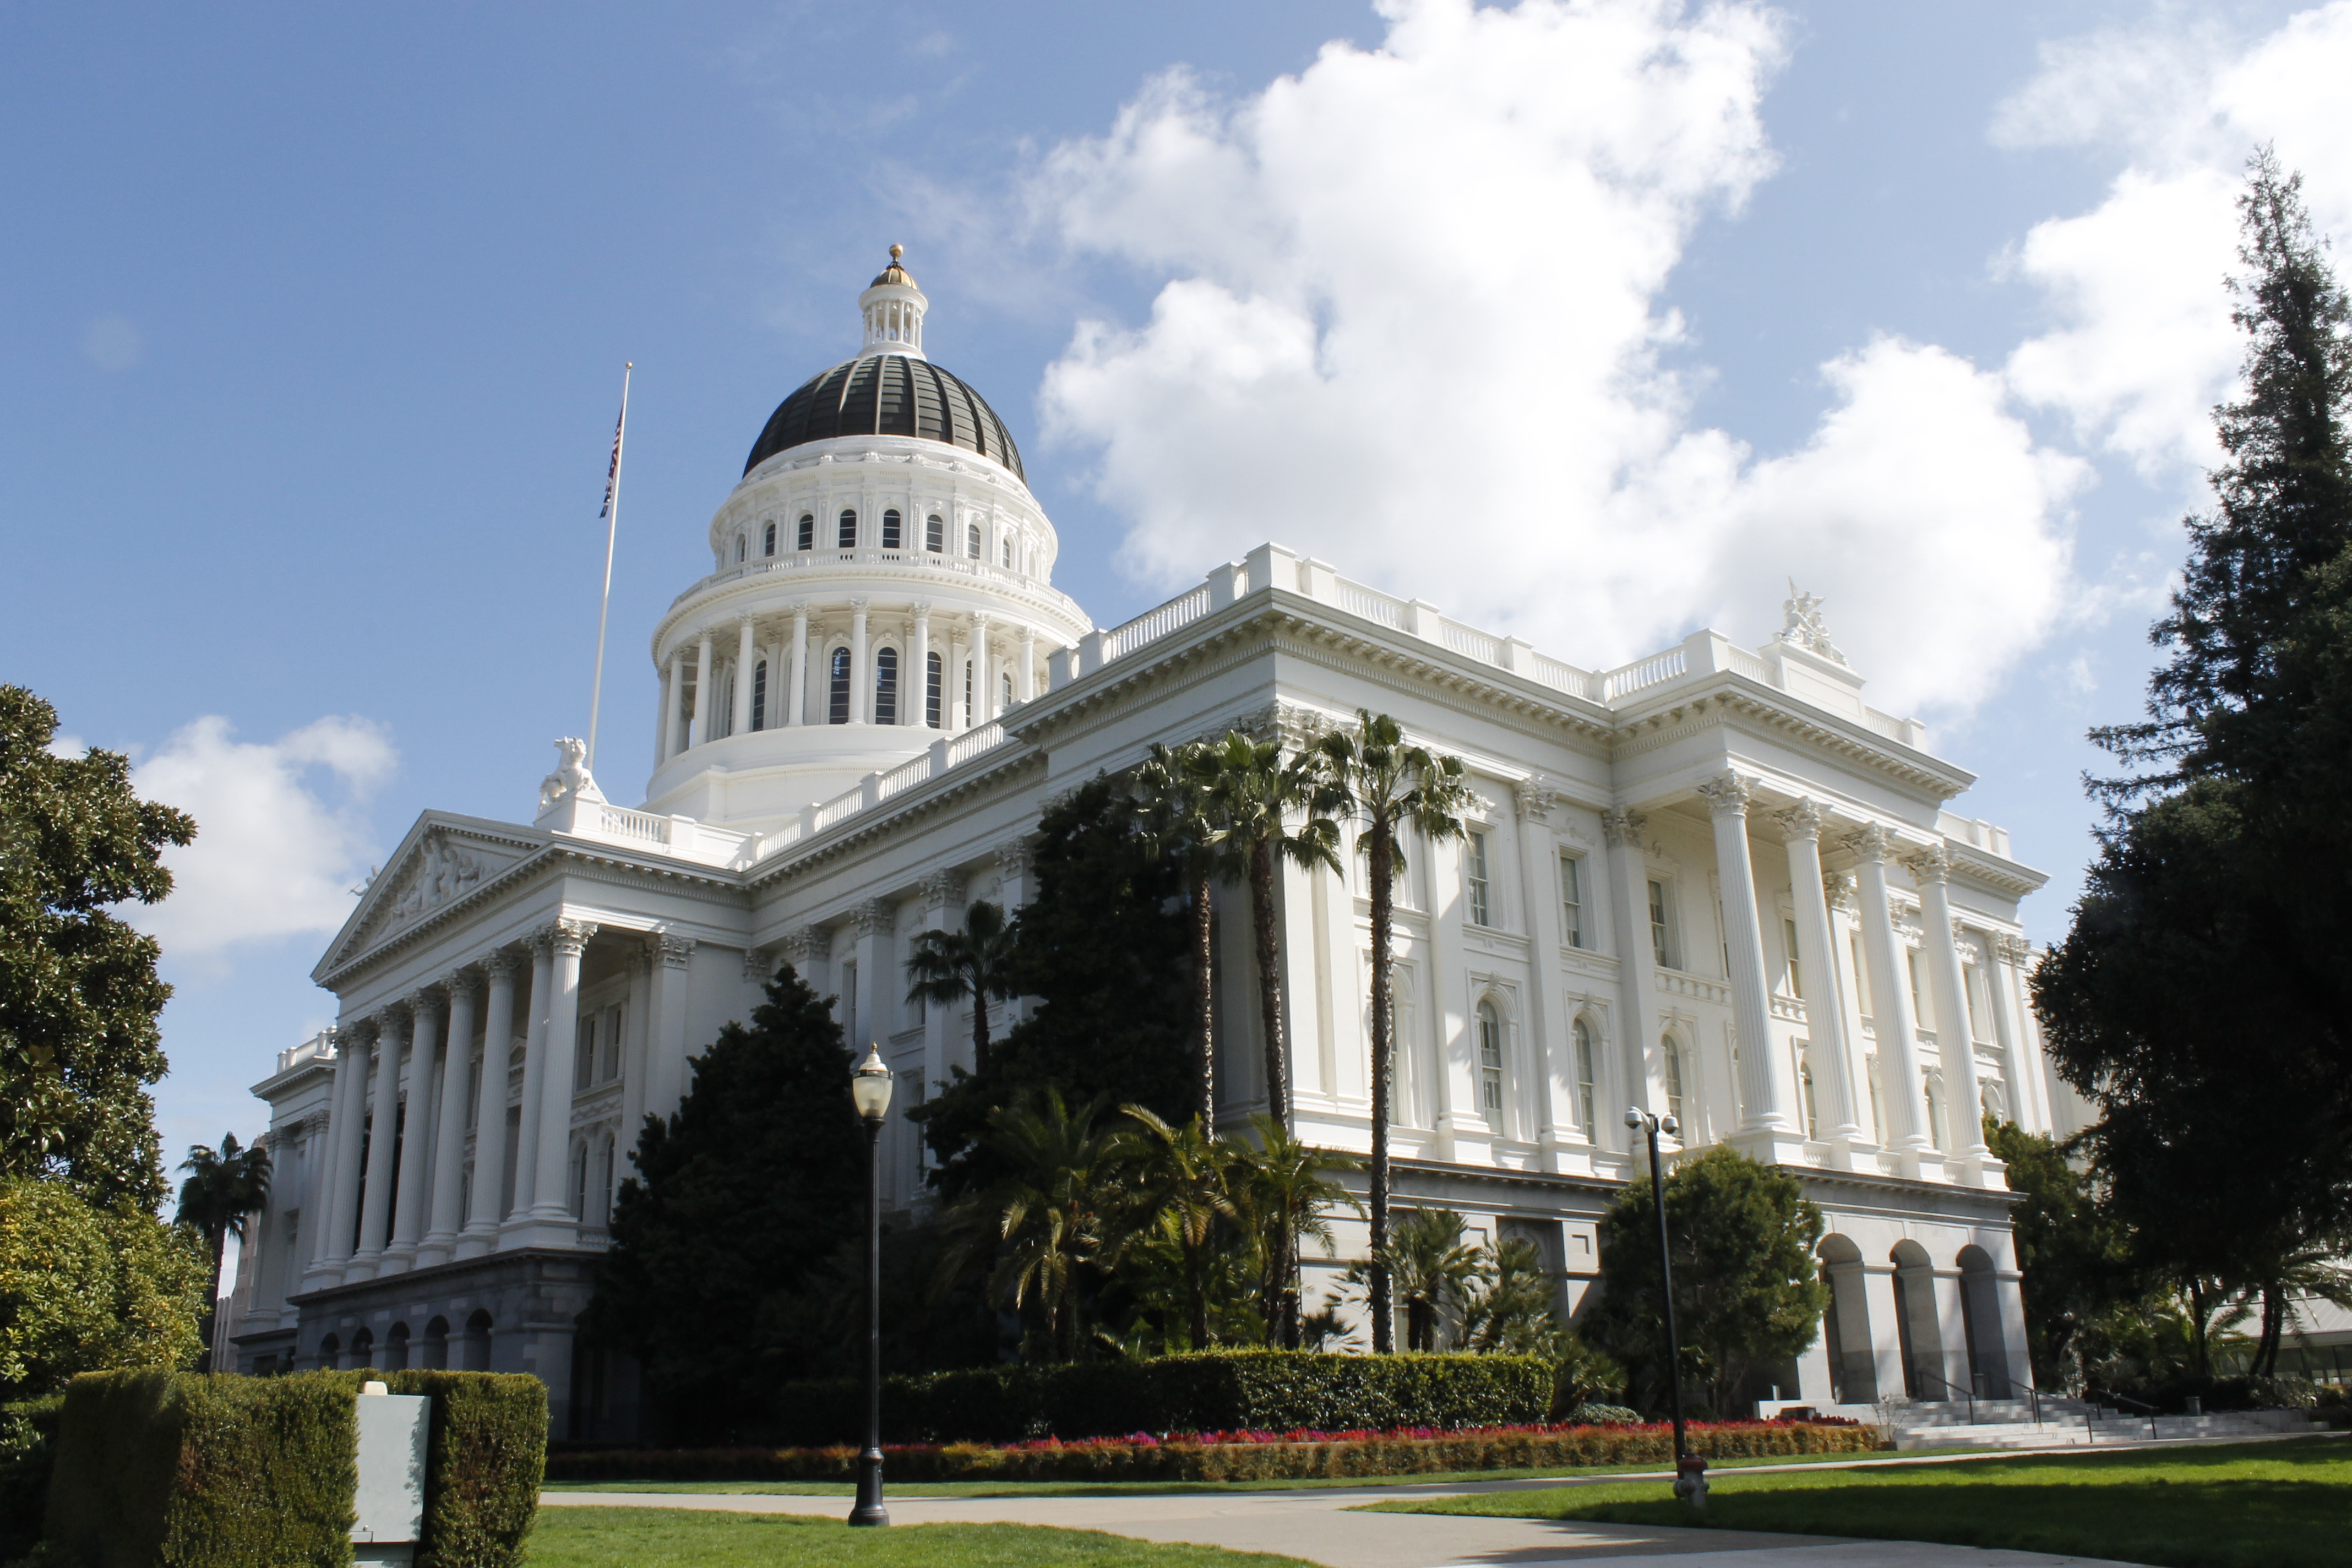 File:Sacramento Capitol Building.jpg - Wikimedia Commons